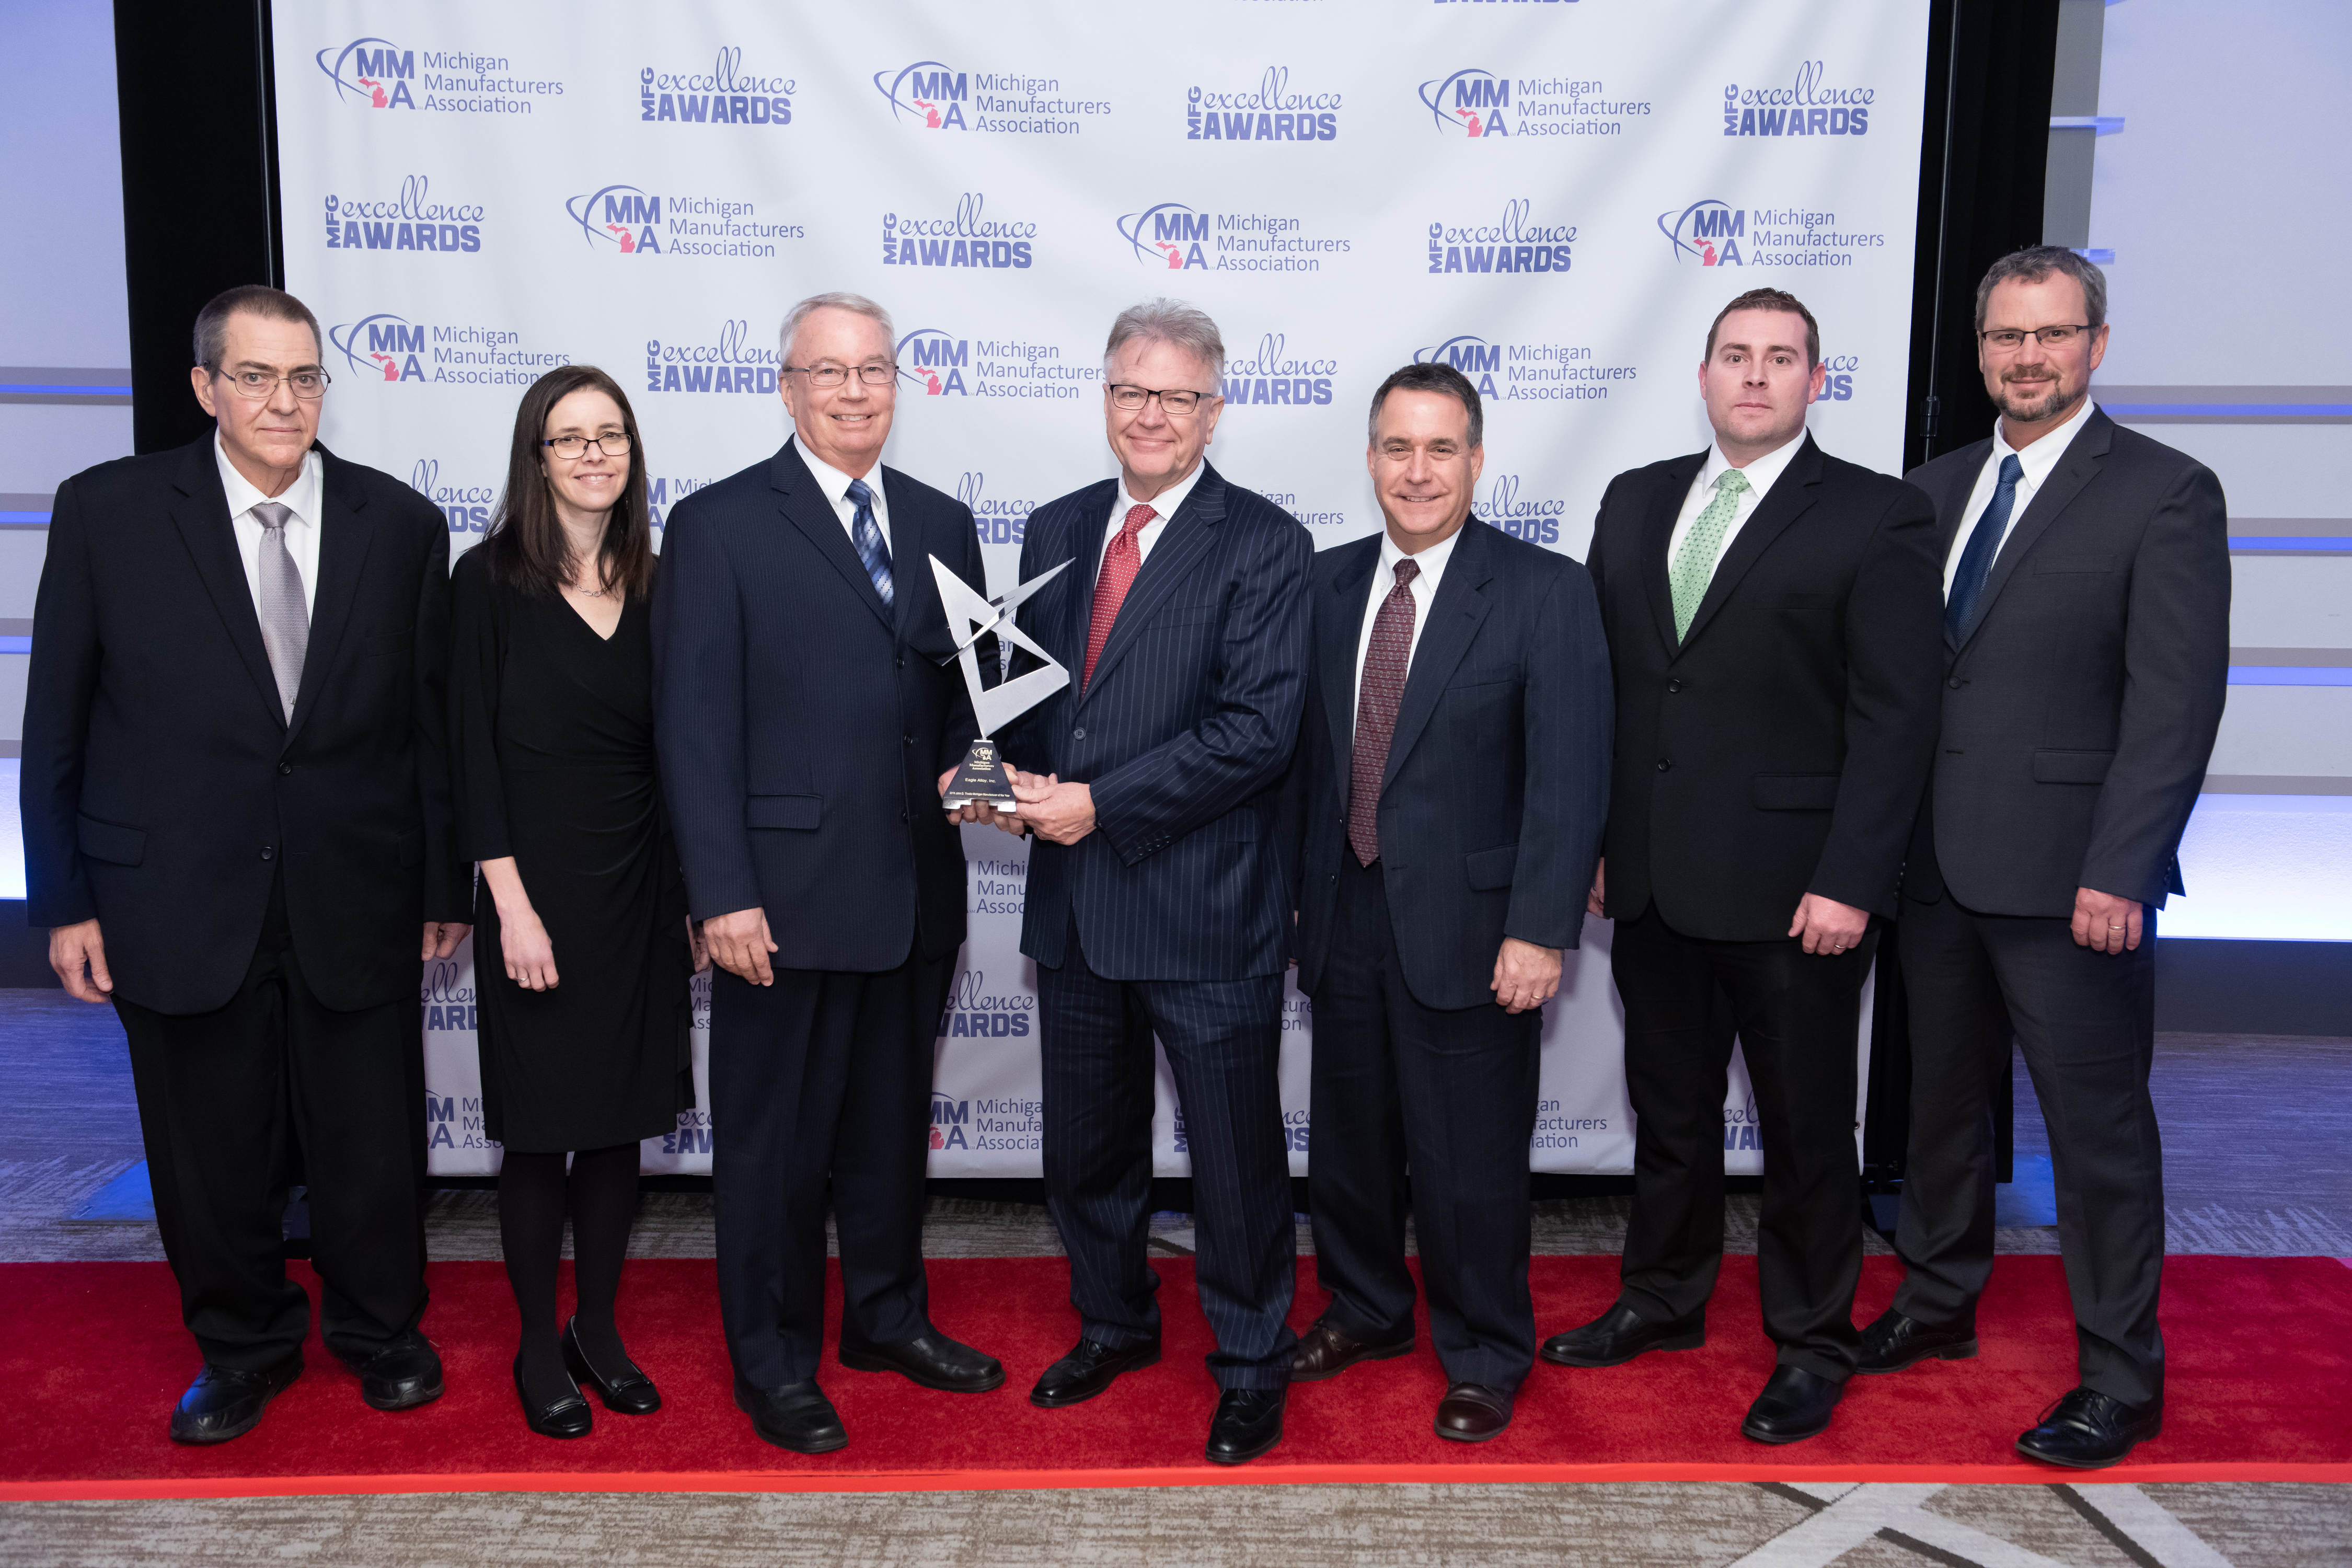 Eagle Alloy accepts award for Michigan Manufacturer of the Year, 2018